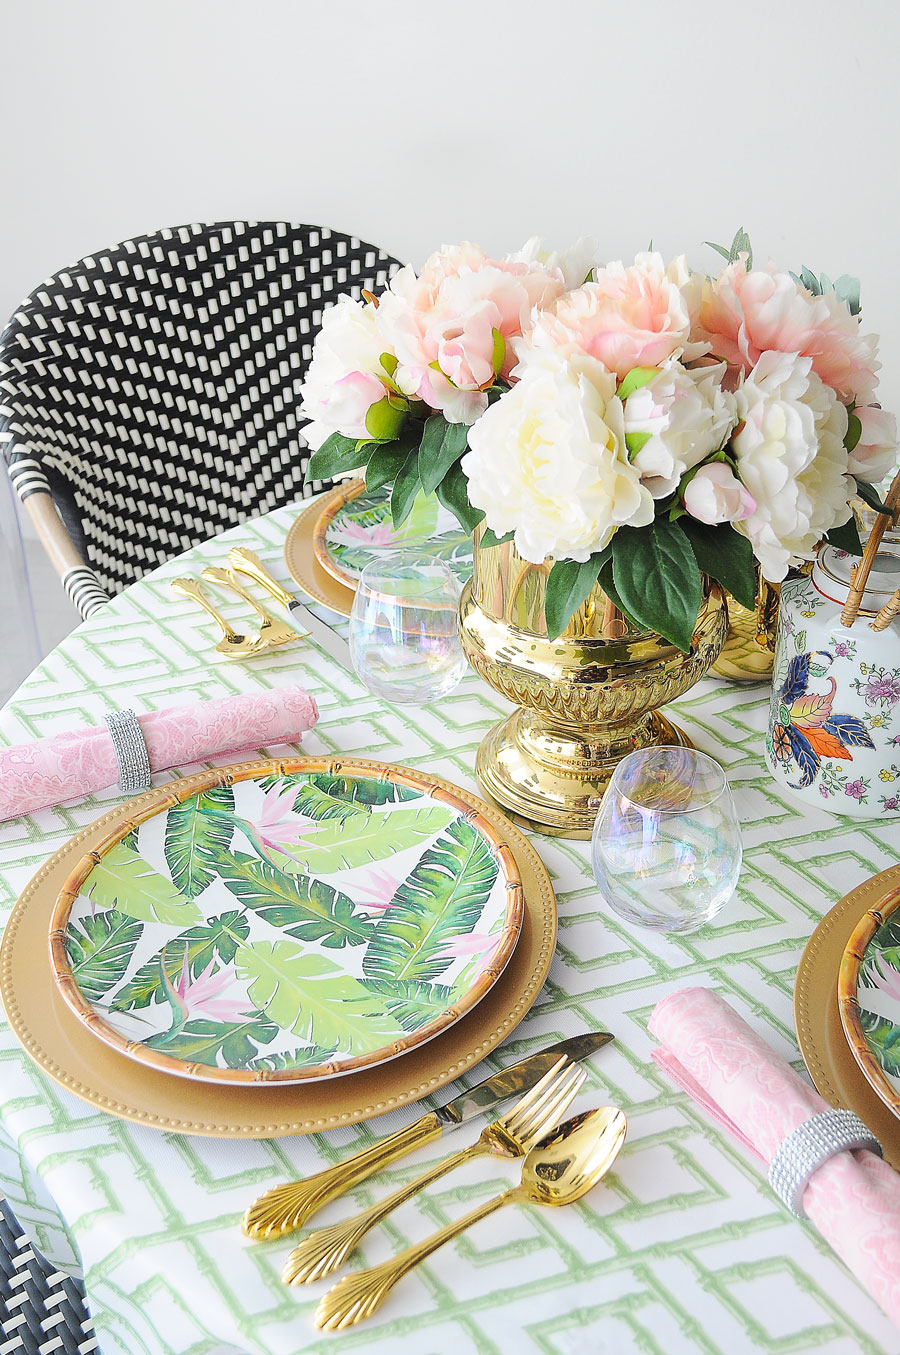 A small dining space centerpiece with major chinoiserie, Lilly Pulitzer and Palm Beach vibes. Featuring bamboo plates, gold chargers and flatware and pink peonies.